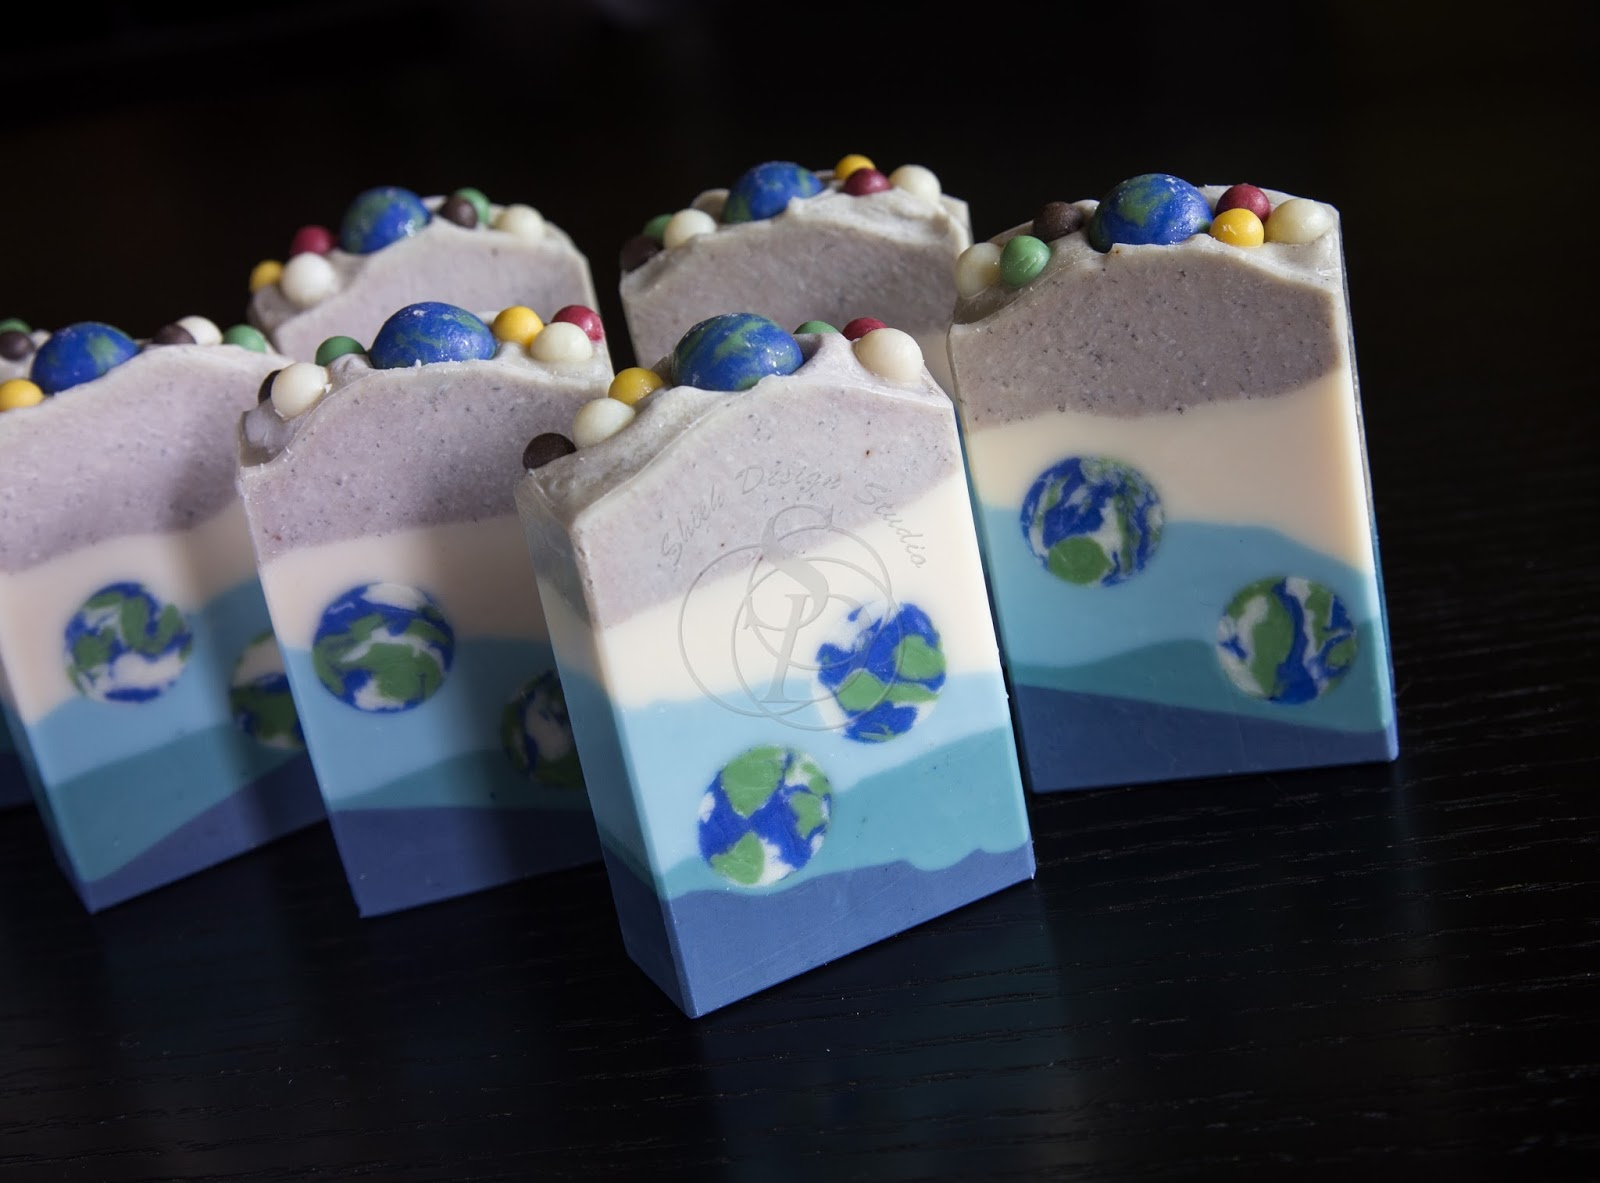 My media studies project - a name for a new soap?